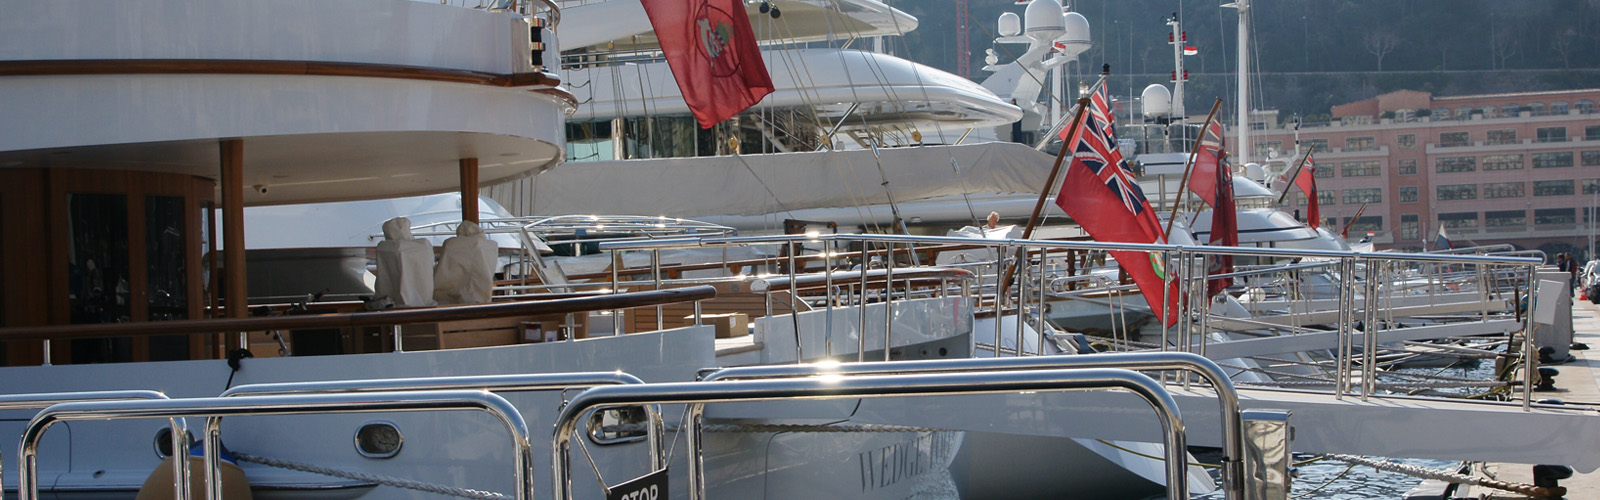 super-yacht-at-the-port